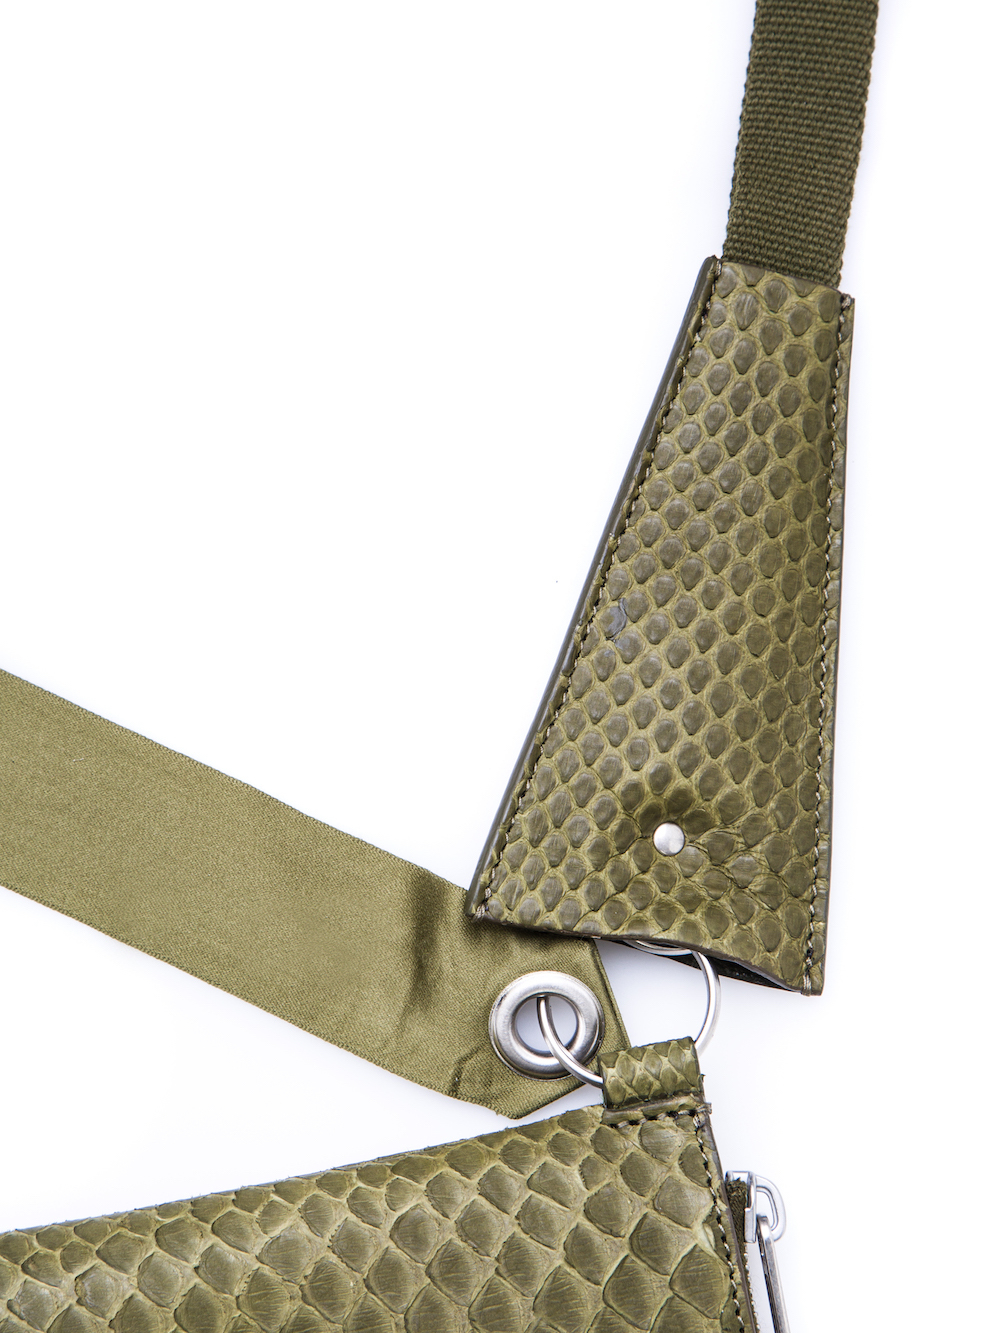 RICK OWENS NECKWALLET IN DIRTY GREEN PYTHON LEATHER